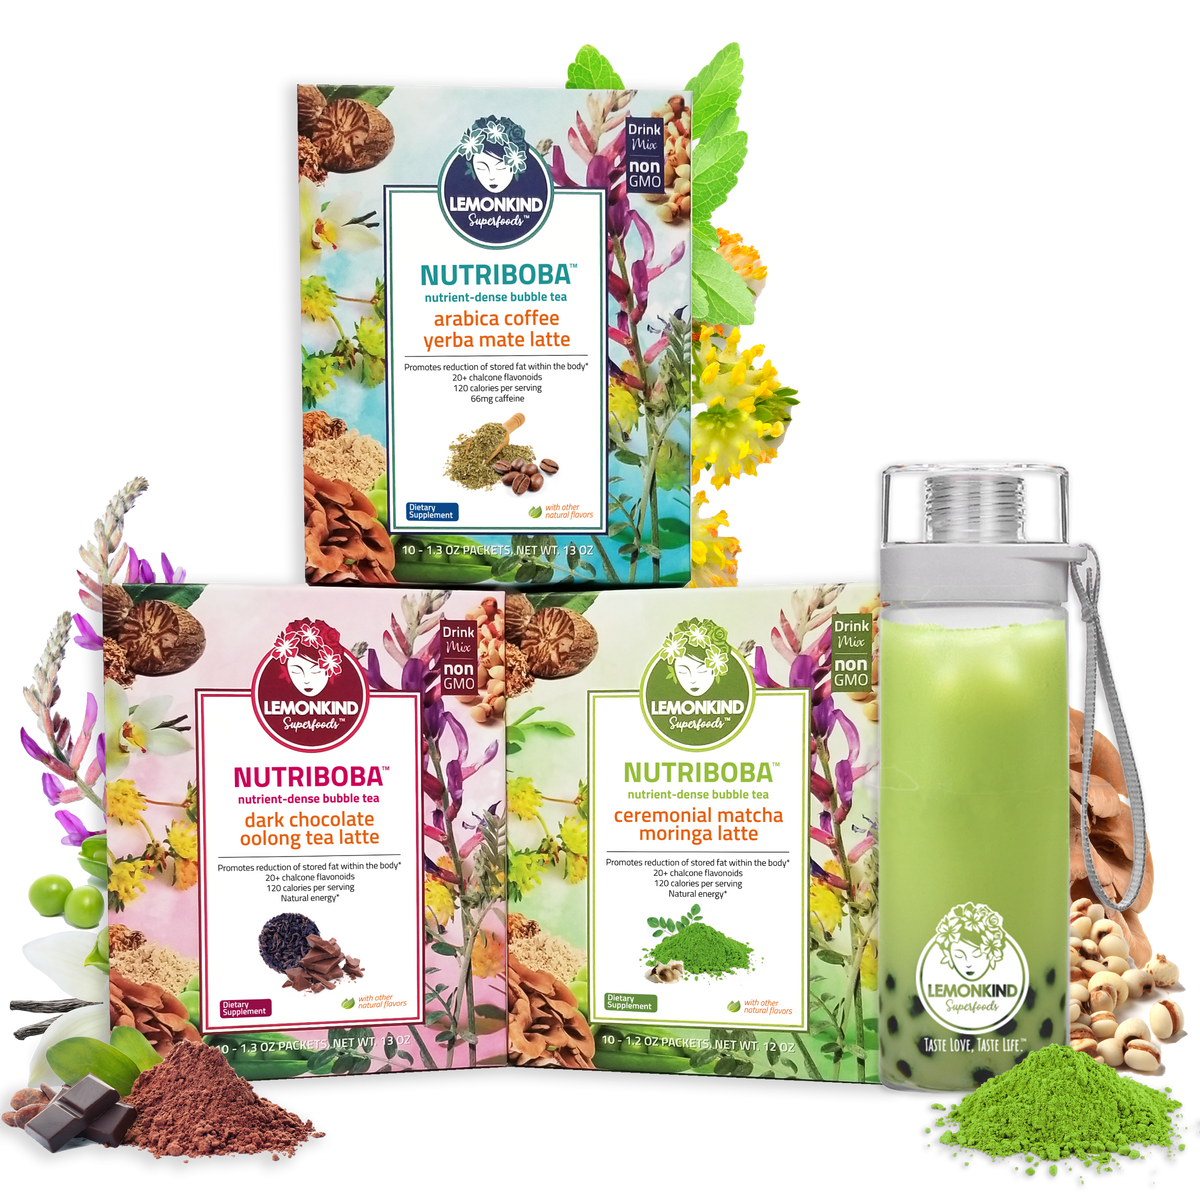 Nutriboba invigorate pack with dark chocolate oolong tea latte ceremonial matcha moringa latte arabica coffee yerba mate latte with tritan shaker with boba and matcha tea latte adaptogens chalcone flavonoids weight loss detox digestion adaptogens stress busting fat burning